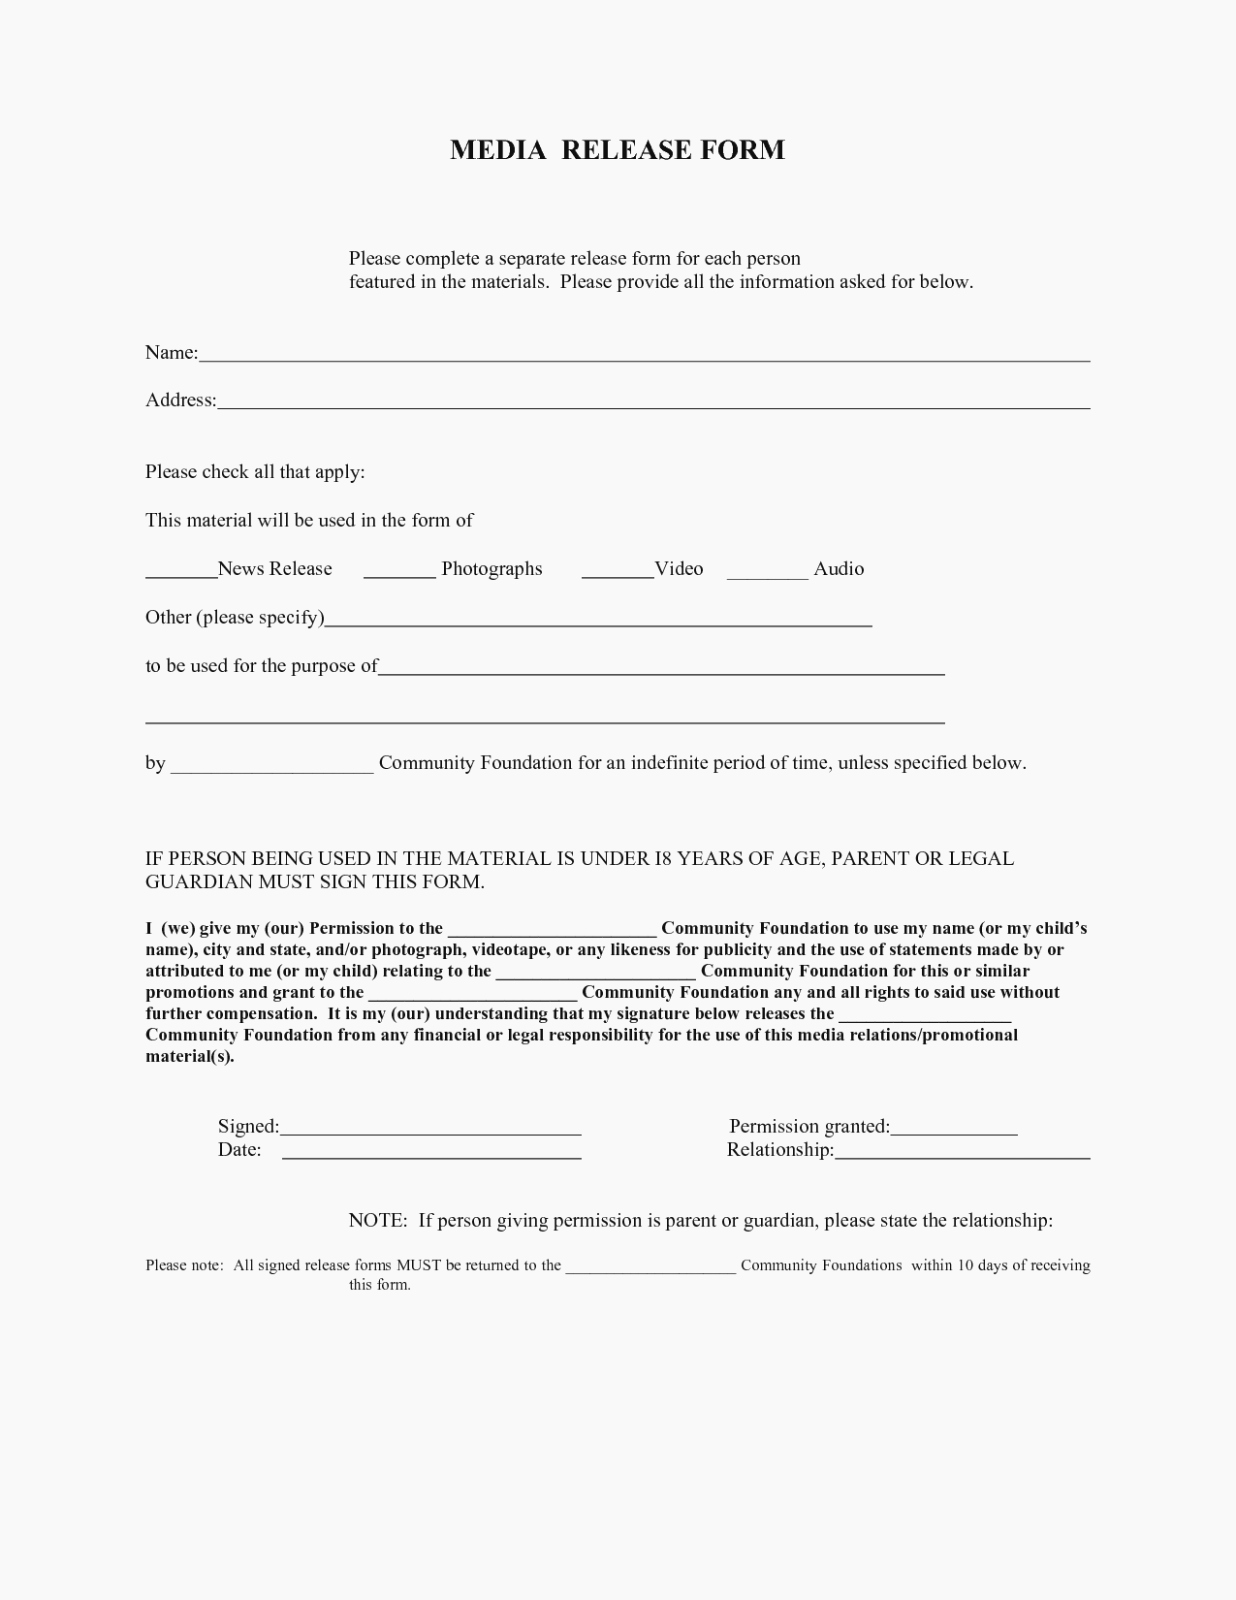 Social Media Release form New Understand the Background